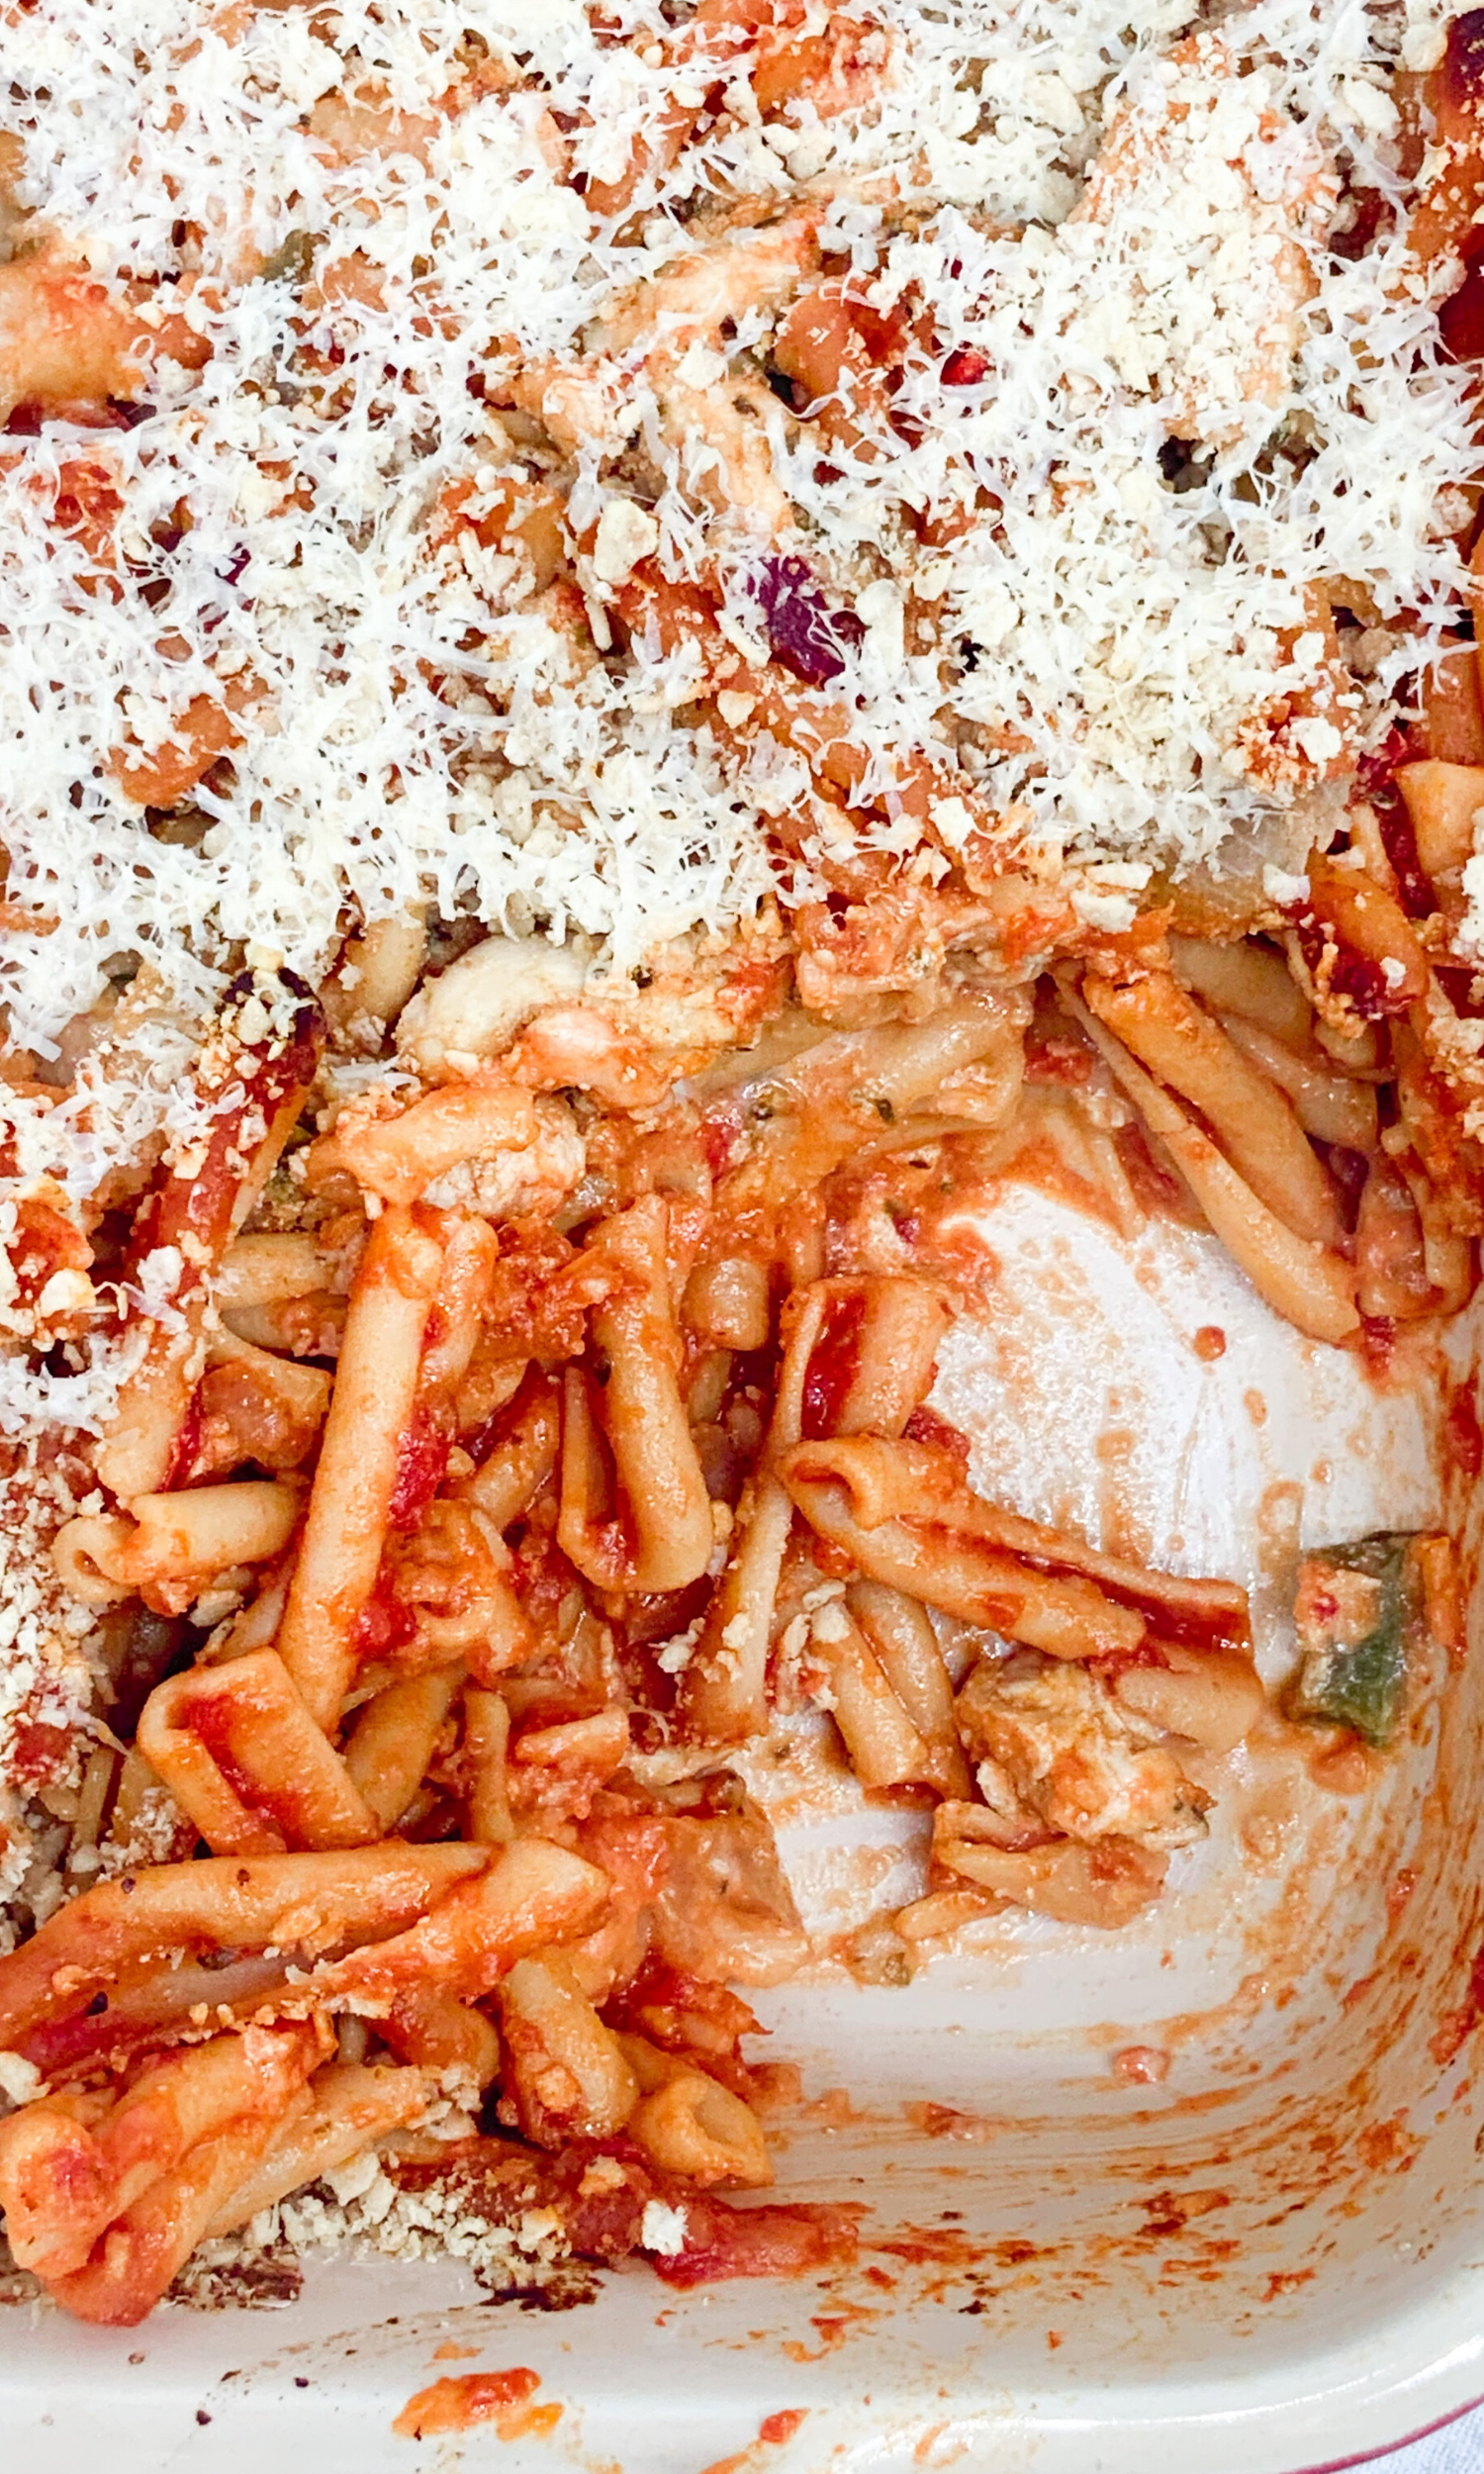 baked chicken parmesan casserole in a baking dish with a serving taken out of it showing off the textures inside the dish.